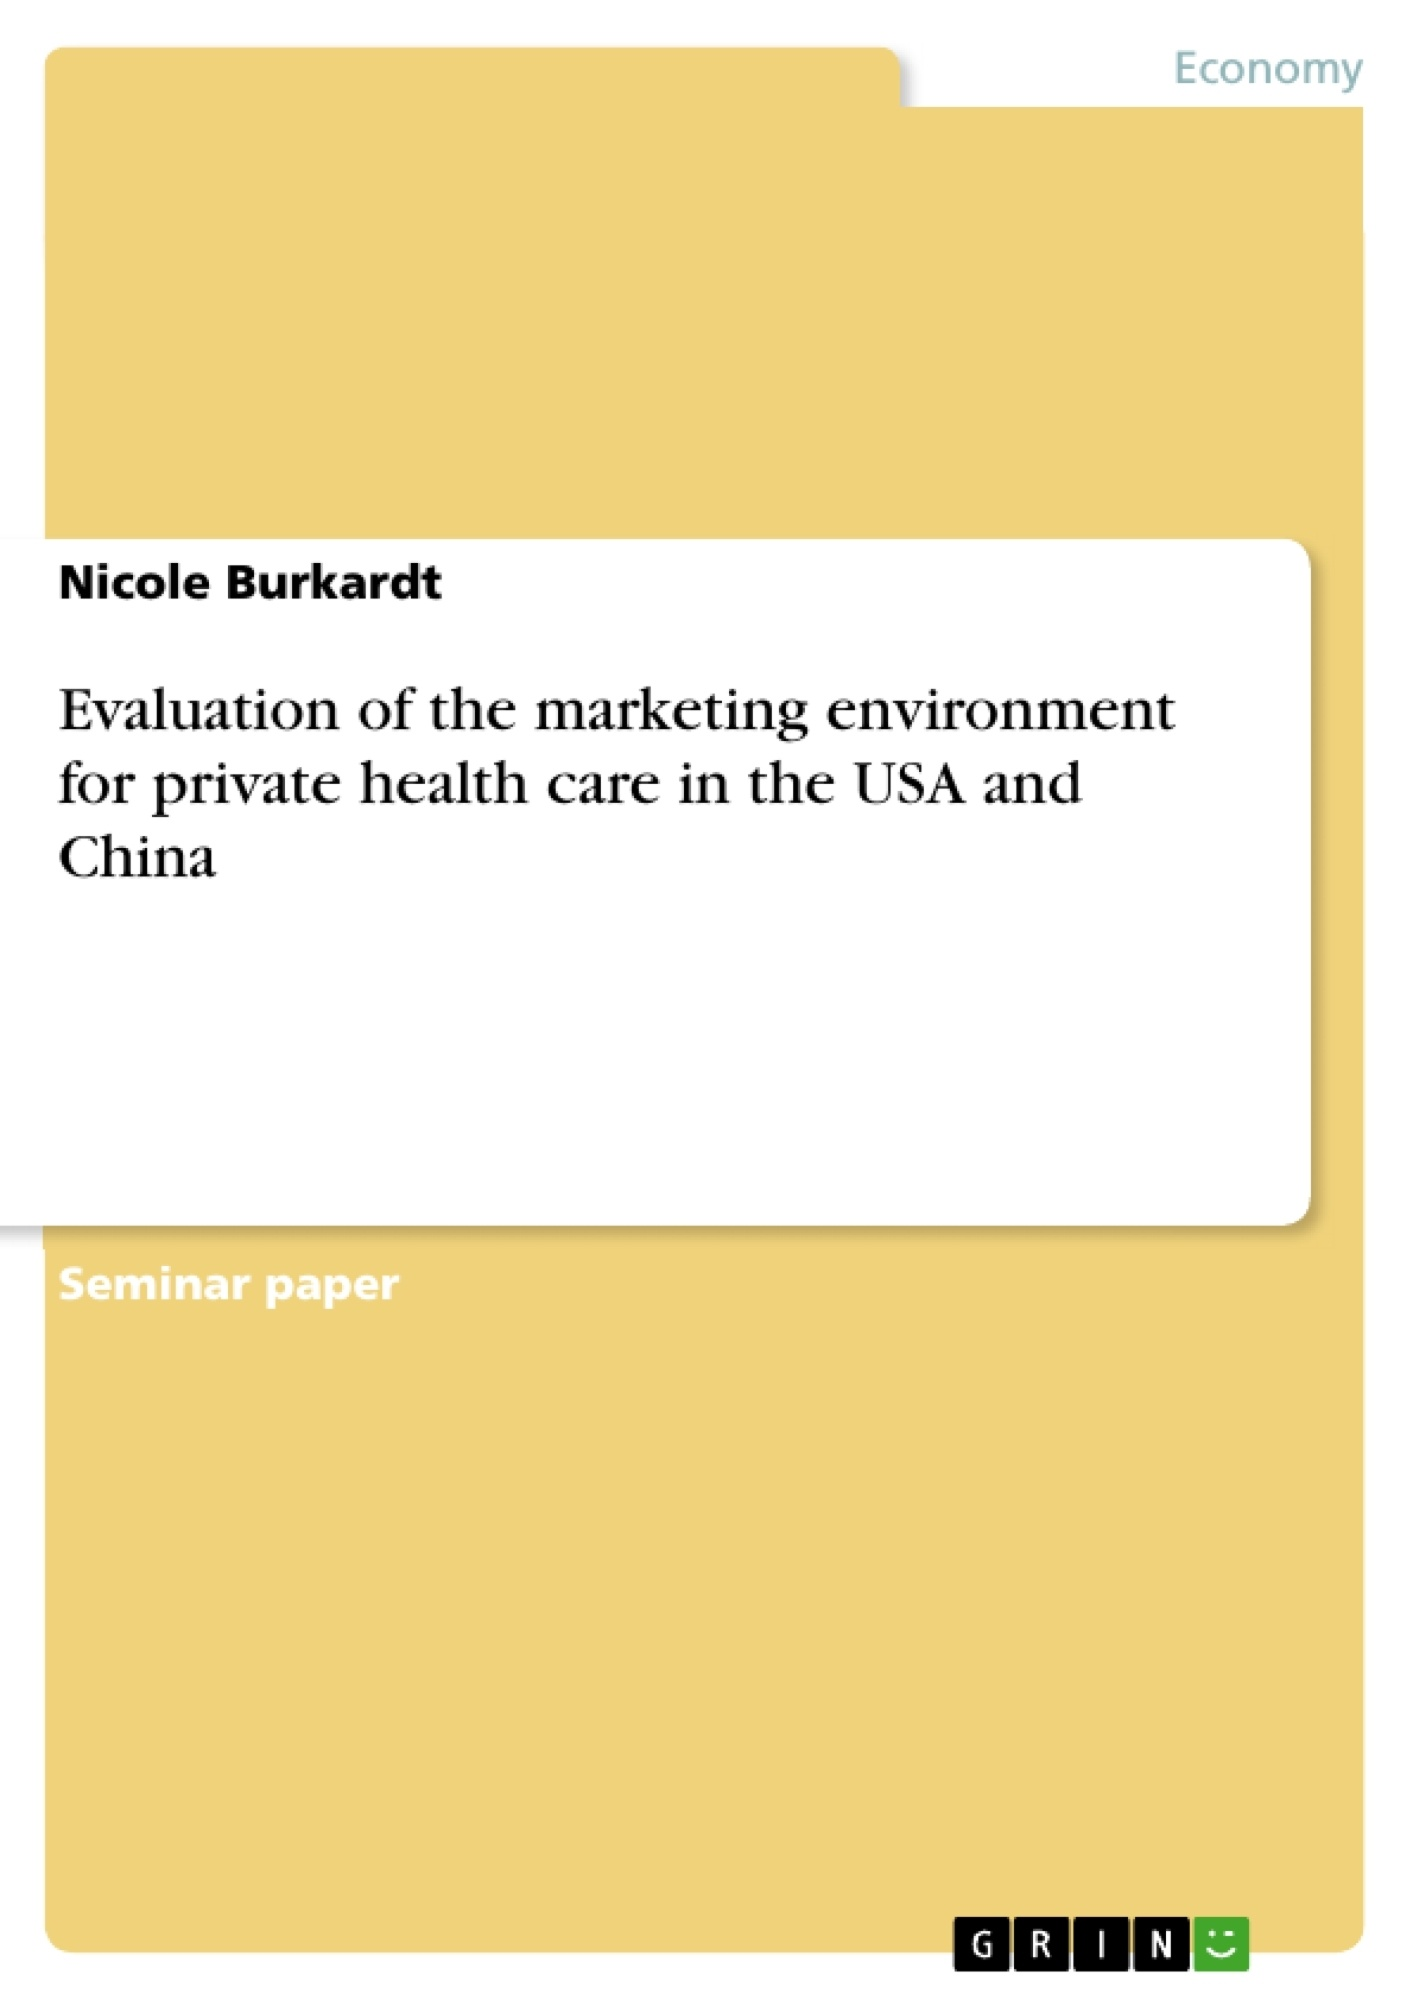 Title: Evaluation of the marketing environment for private health care in the USA and China